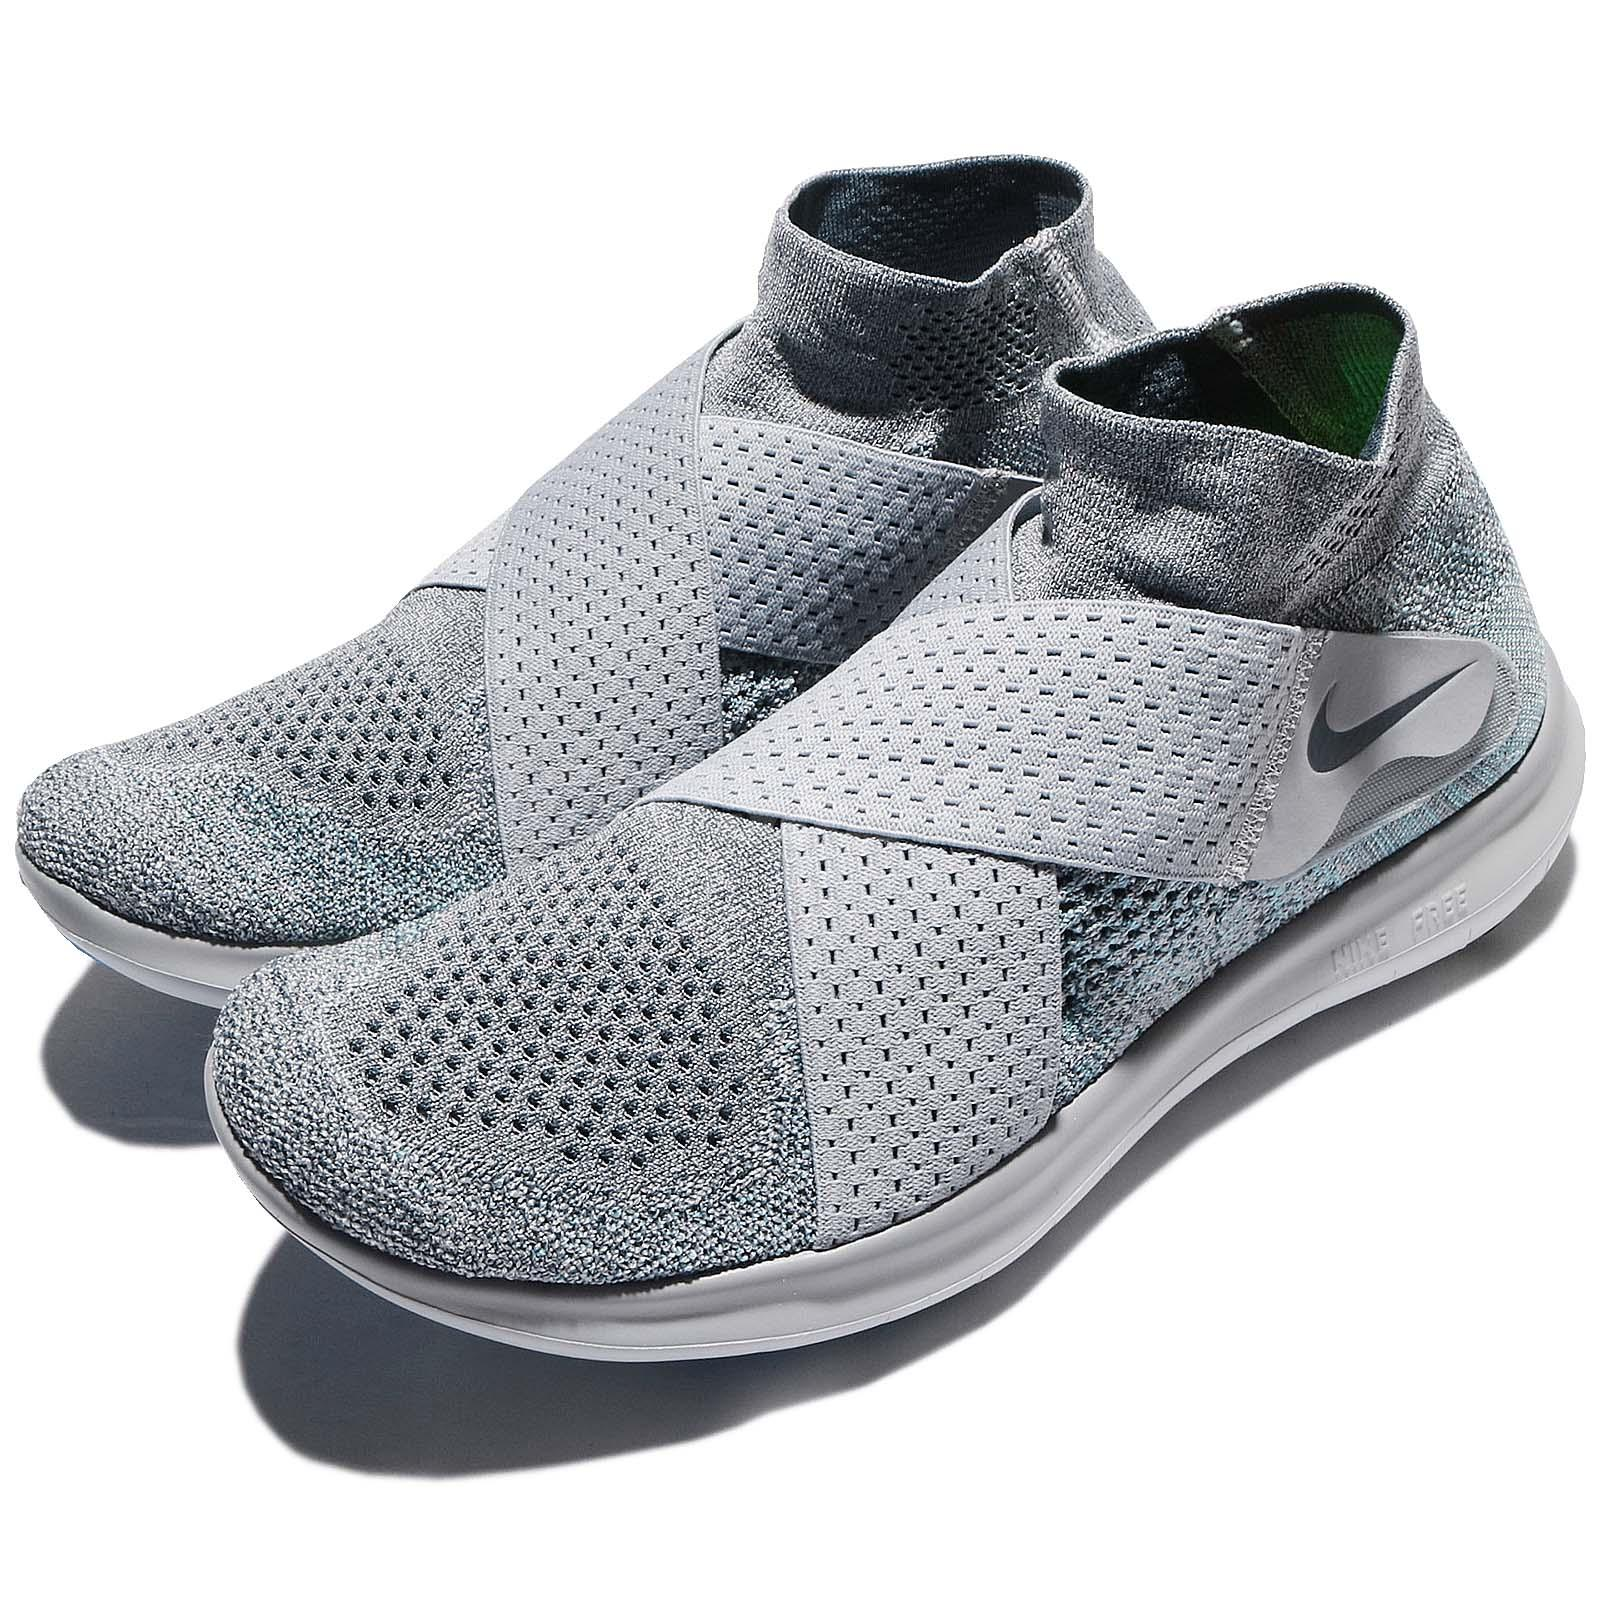 9c2ef39ce95 Details about Nike Free RN Motion FK 2017 Run Flyknit Men Running Shoes  Sneakers 880845-006